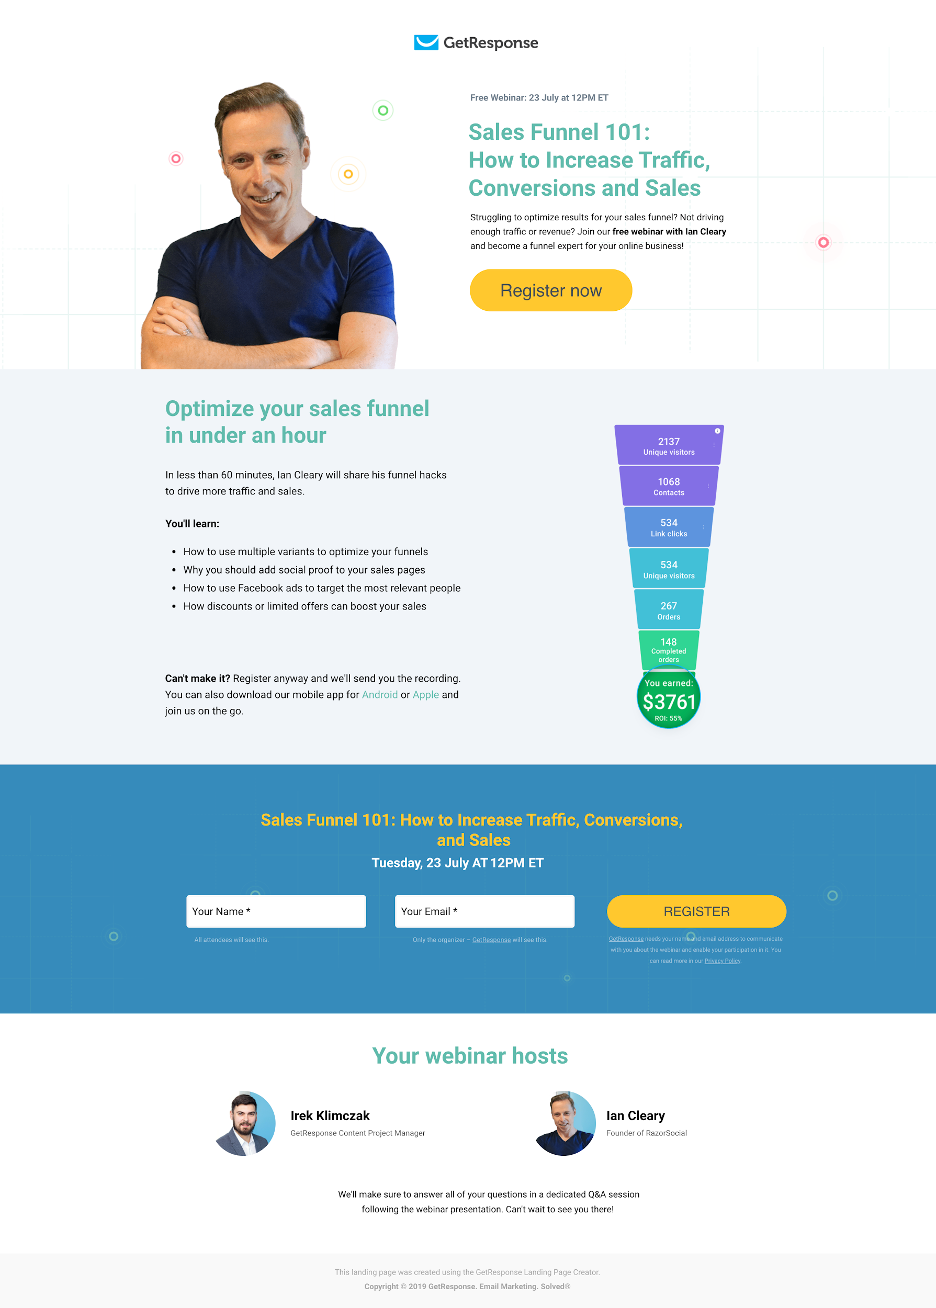 Webinar landing page example featuring a known speaker – Ian Cleary.